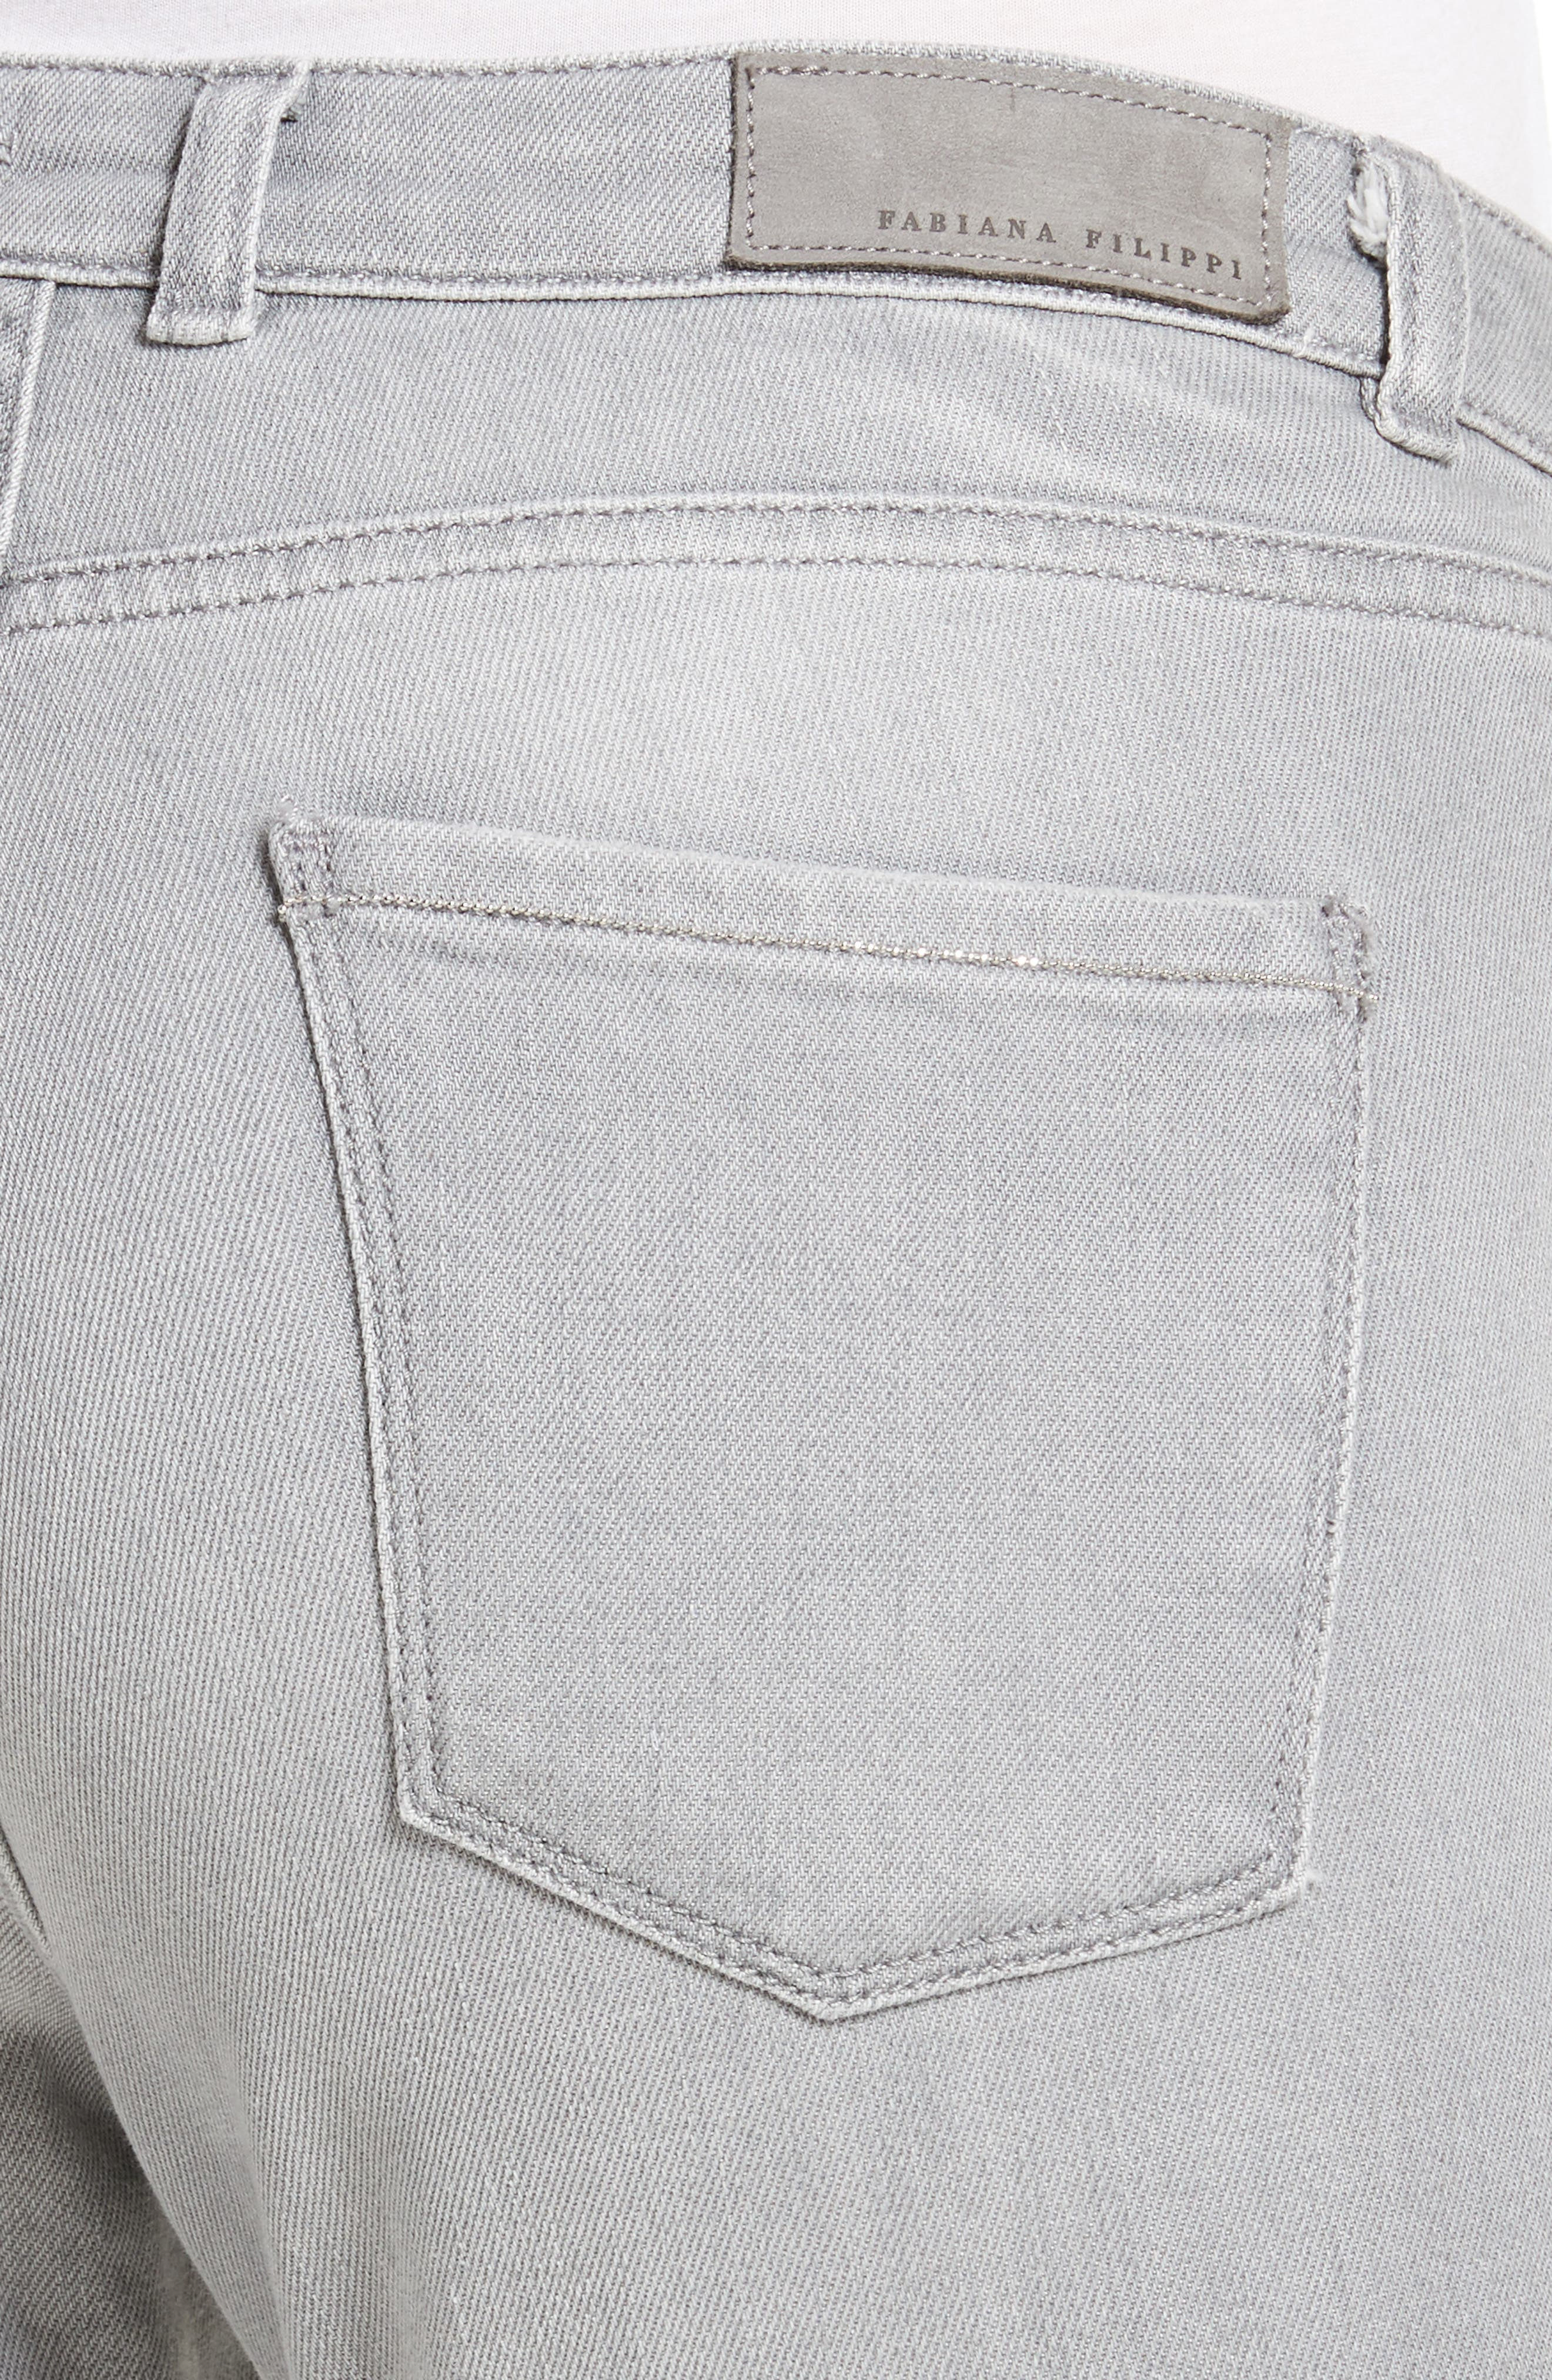 Stretch Skinny Jeans,                             Alternate thumbnail 5, color,                             020